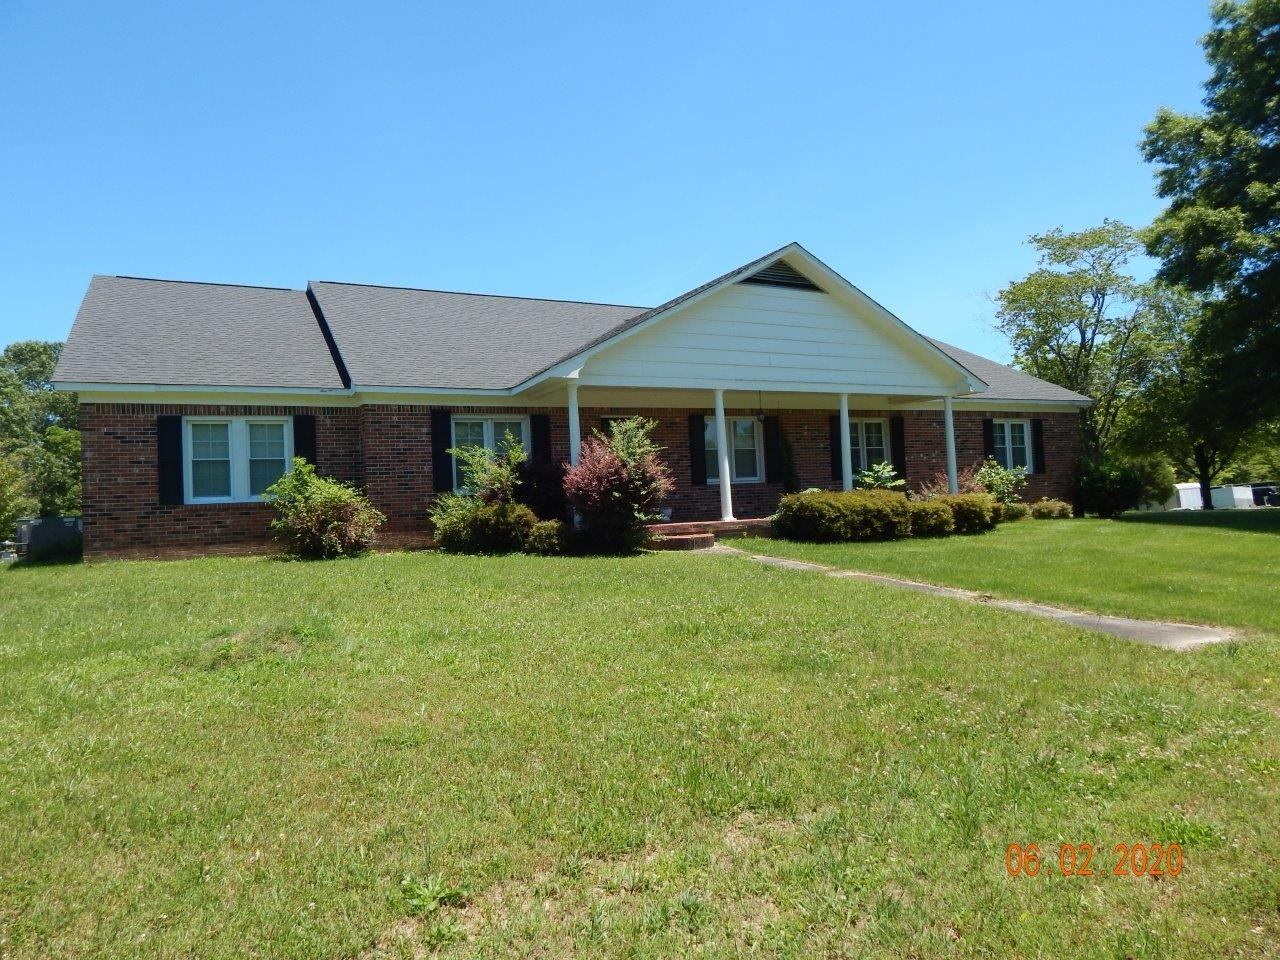 4 BEDROOM HOME FOR SALE IN TN WITH ACREAGE, PASTURE